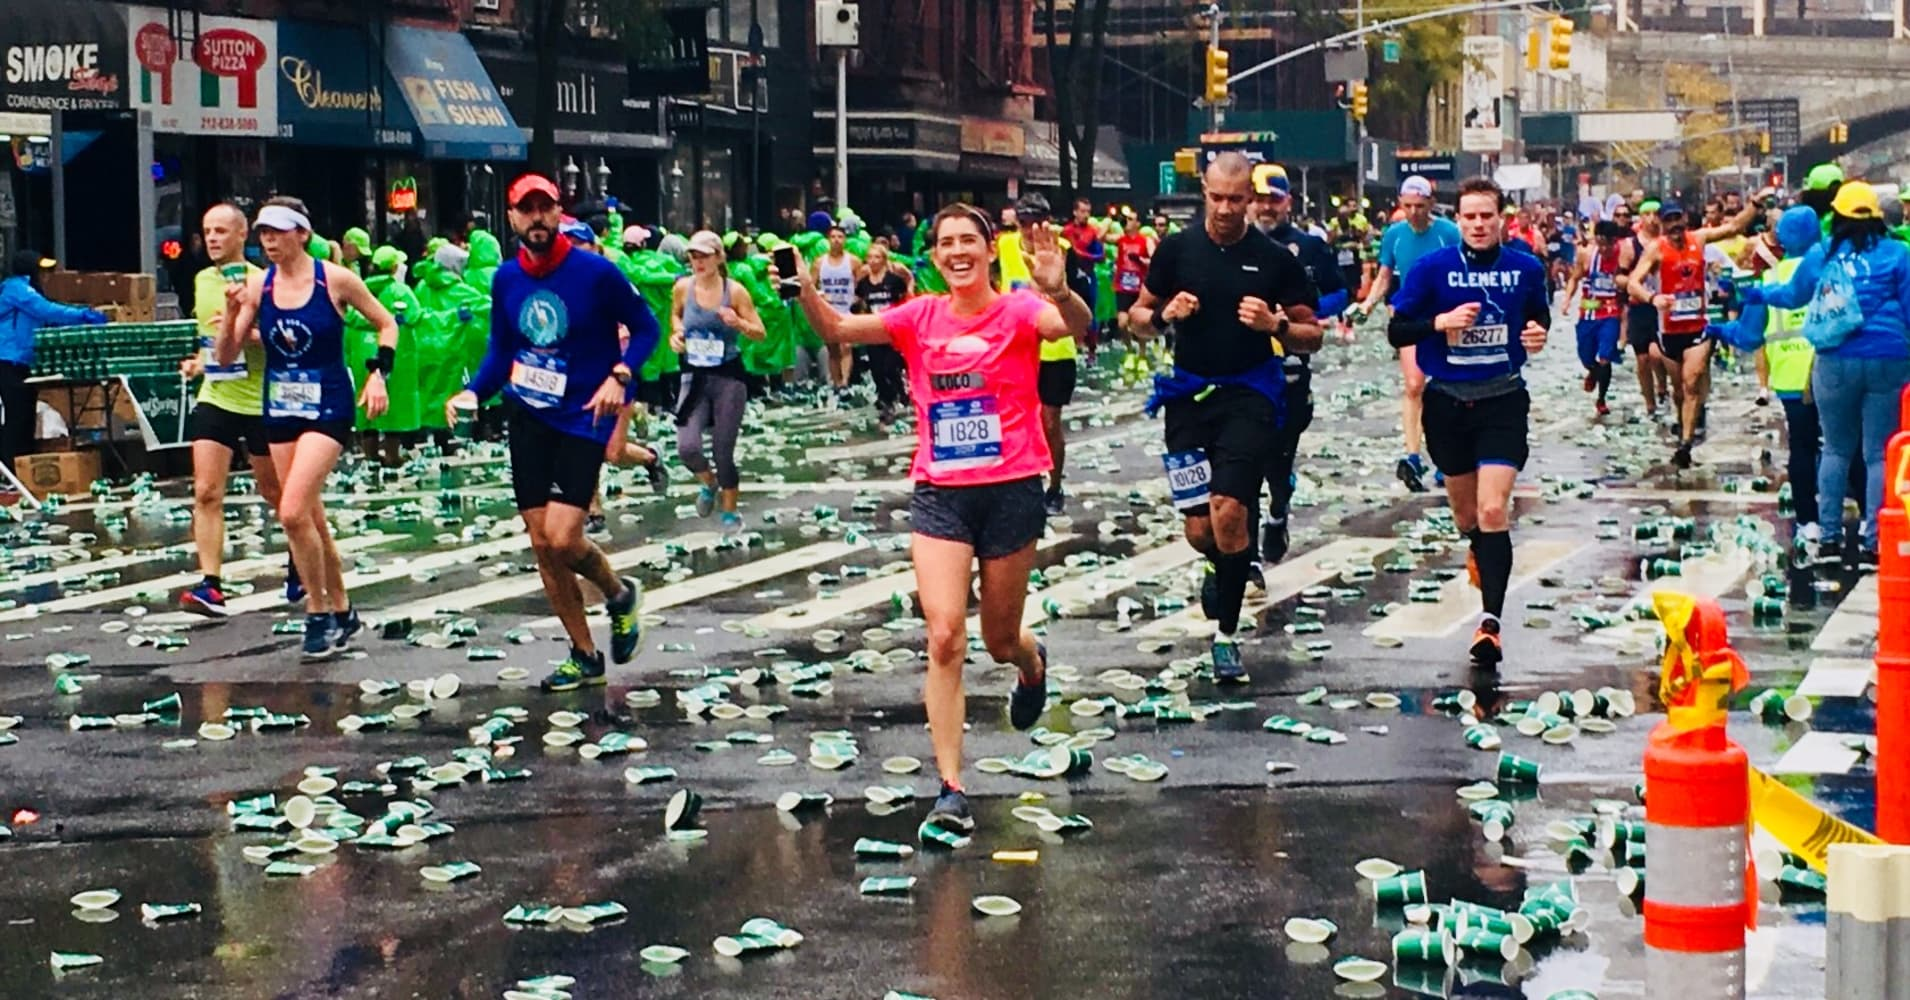 616f72a06707 I spent over  500 to run the 2017 NYC marathon and it was worth it